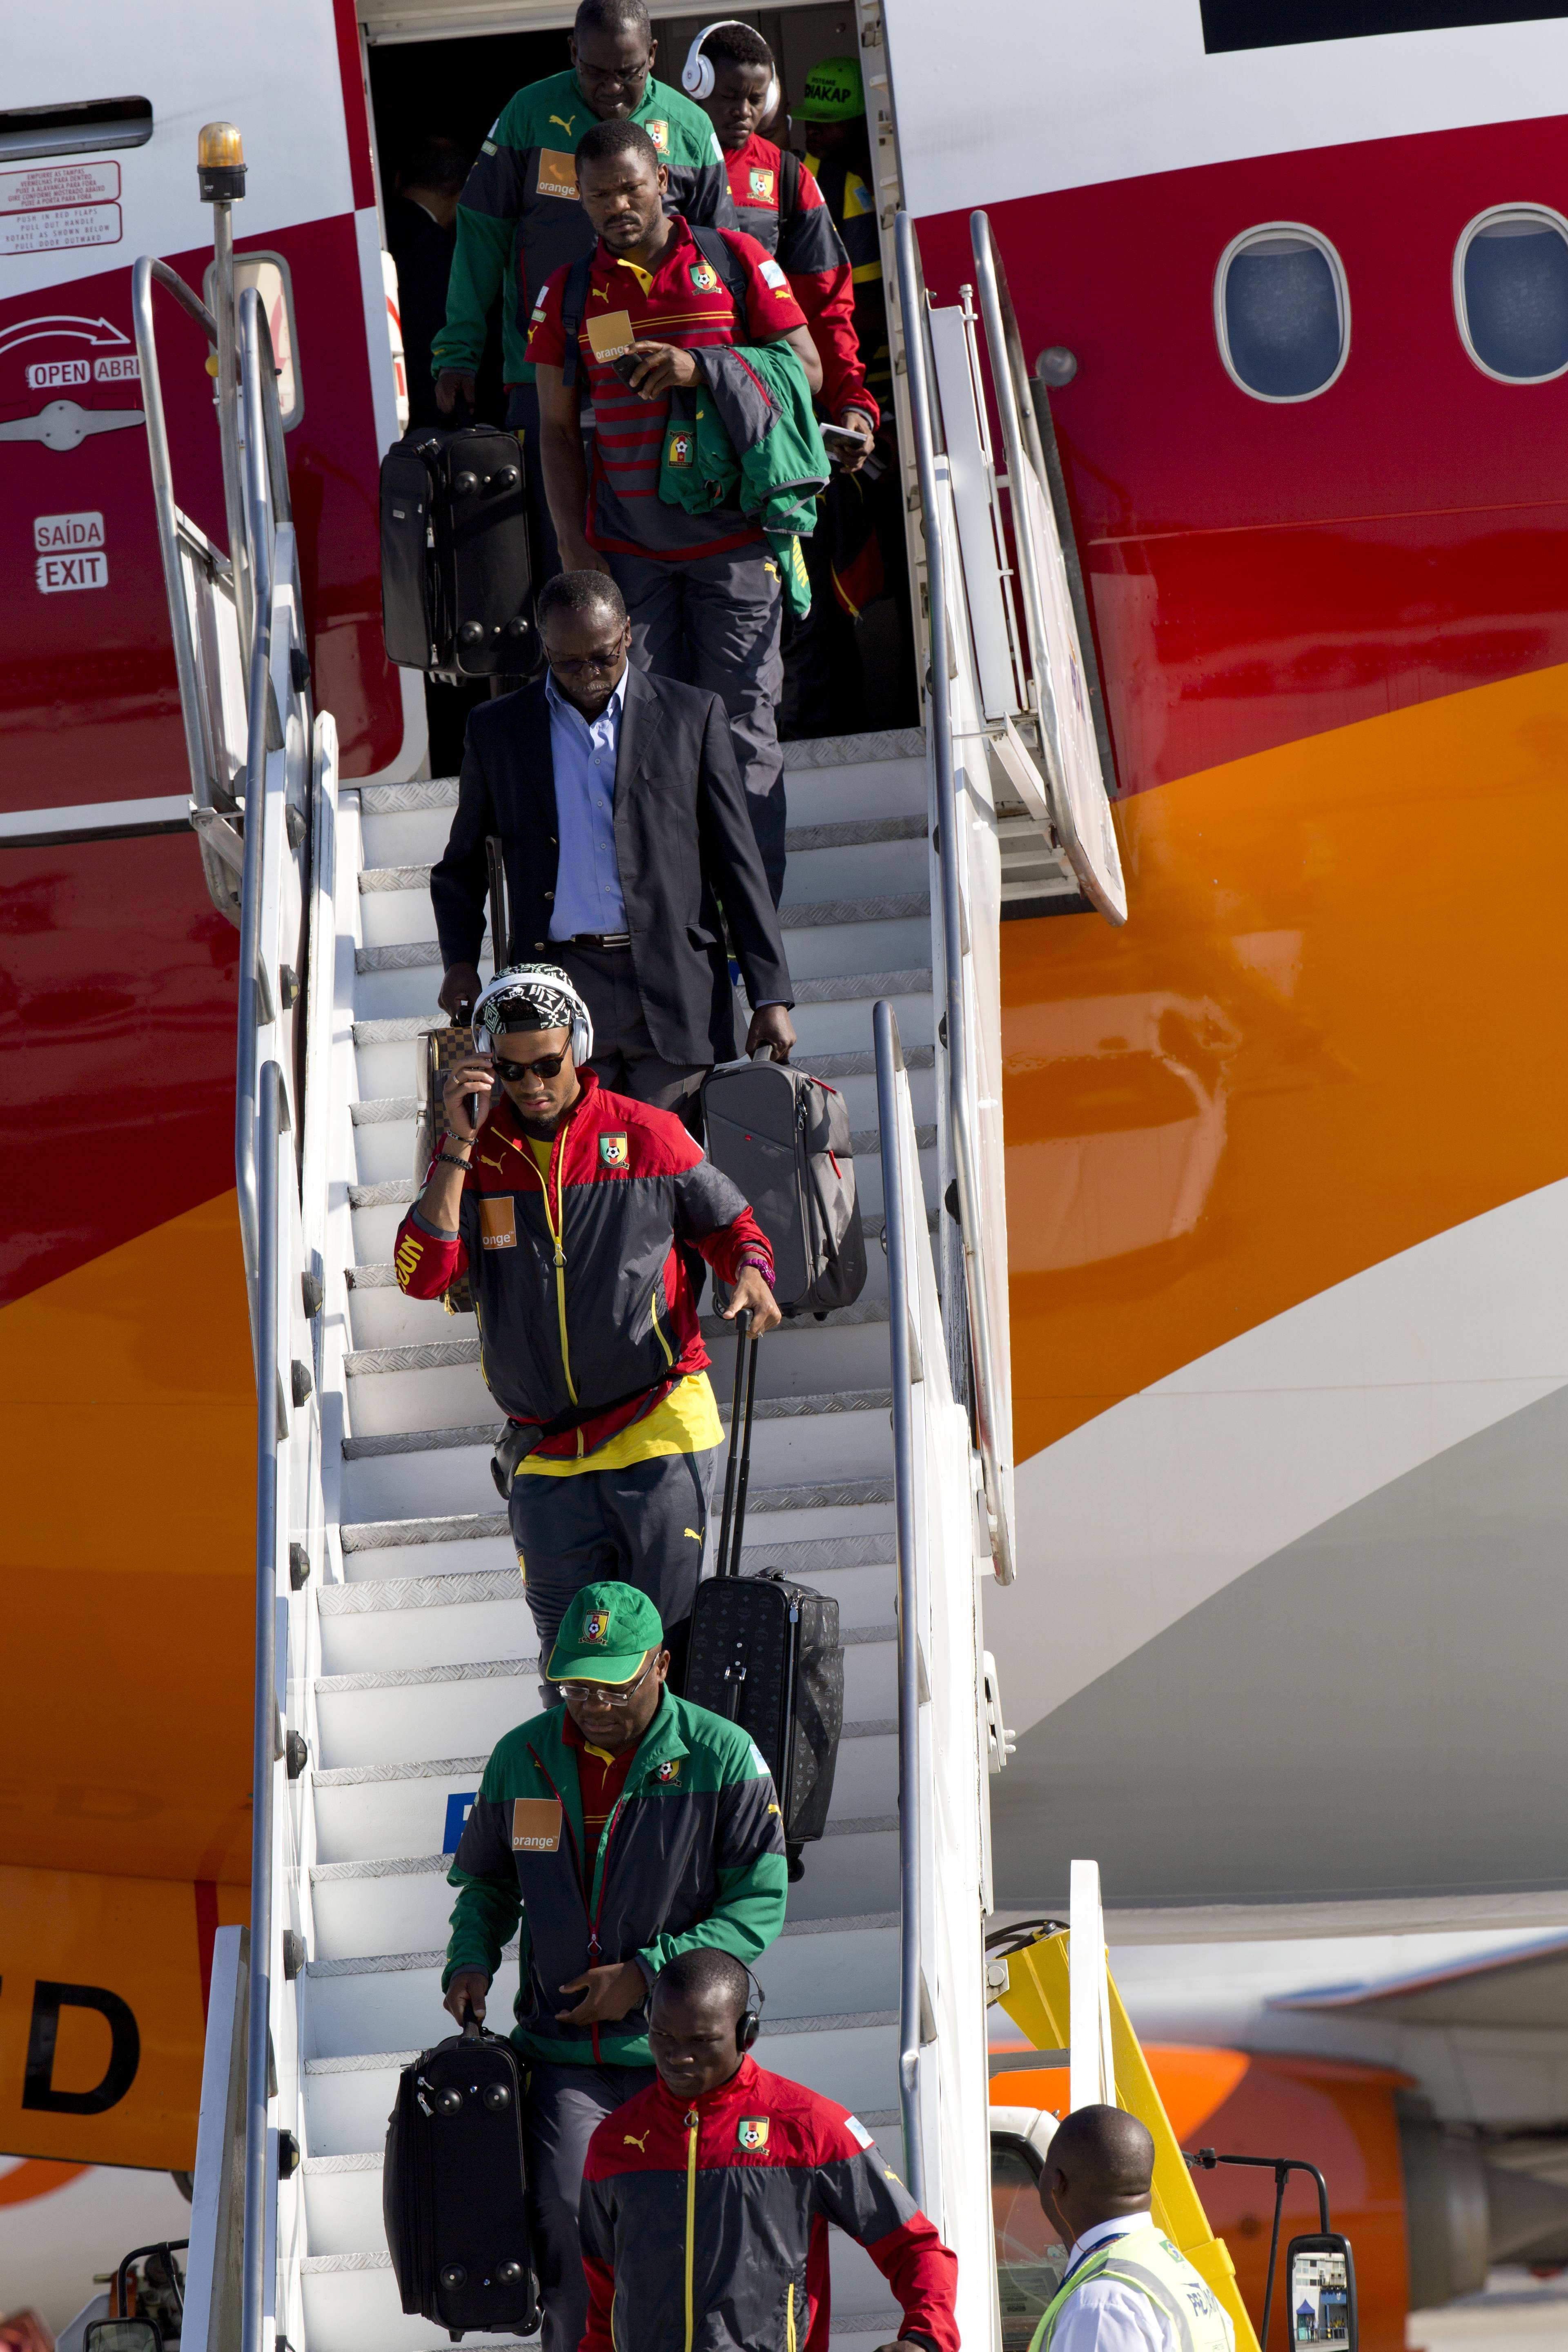 Cameroon national team players arrive Monday at the Galeao Air Base in Rio de Janeiro, Brazil. The team refused to board a plane on Sunday because of a long-running dispute over bonus payments for the World Cup, forcing their national federation to take out a loan to meet their demands.